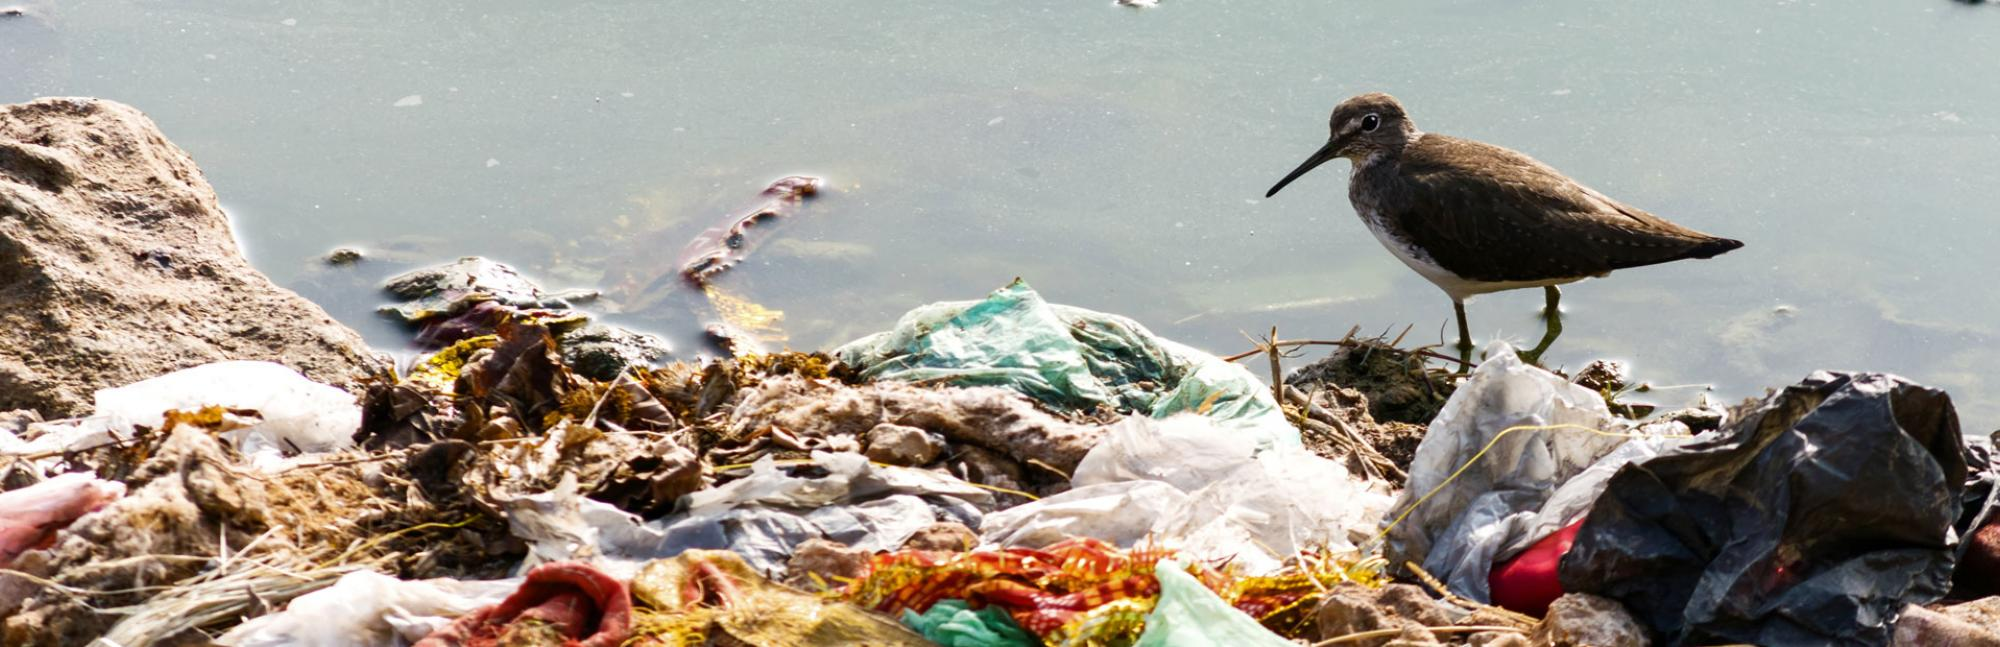 Sea bird on shore in piles of washed up rubbish